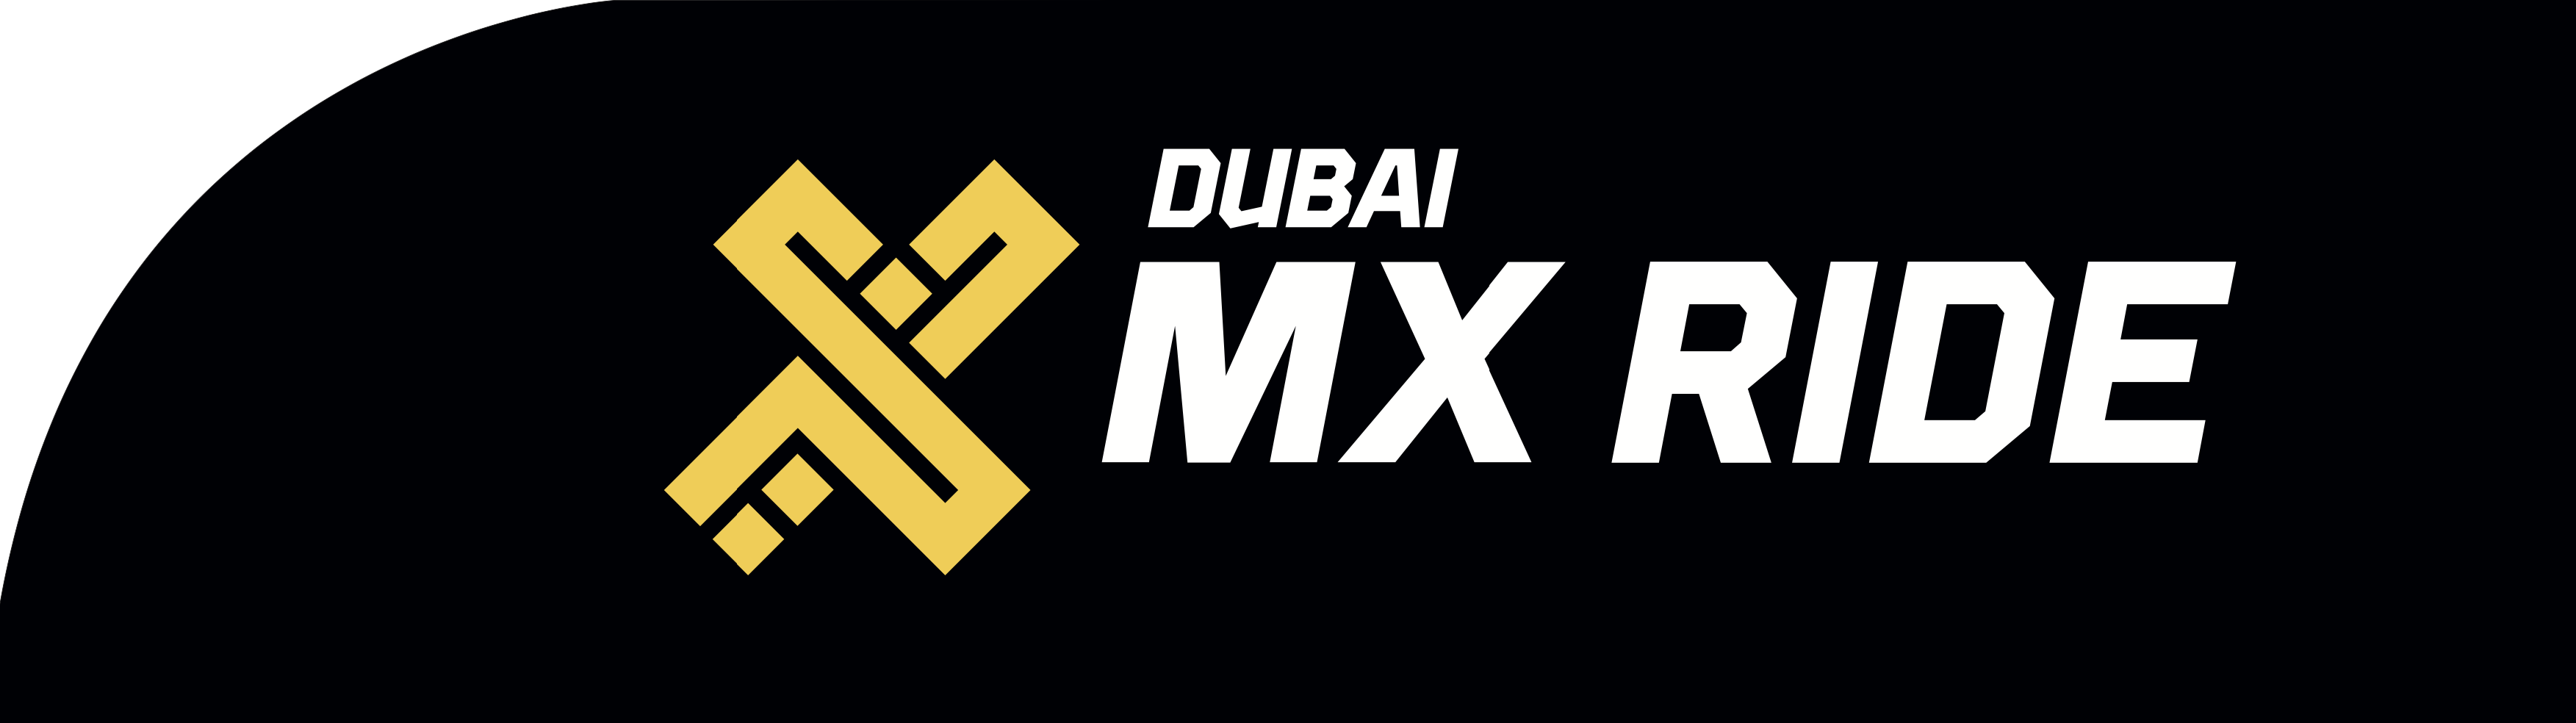 mx-ride-dubai-logo-flag